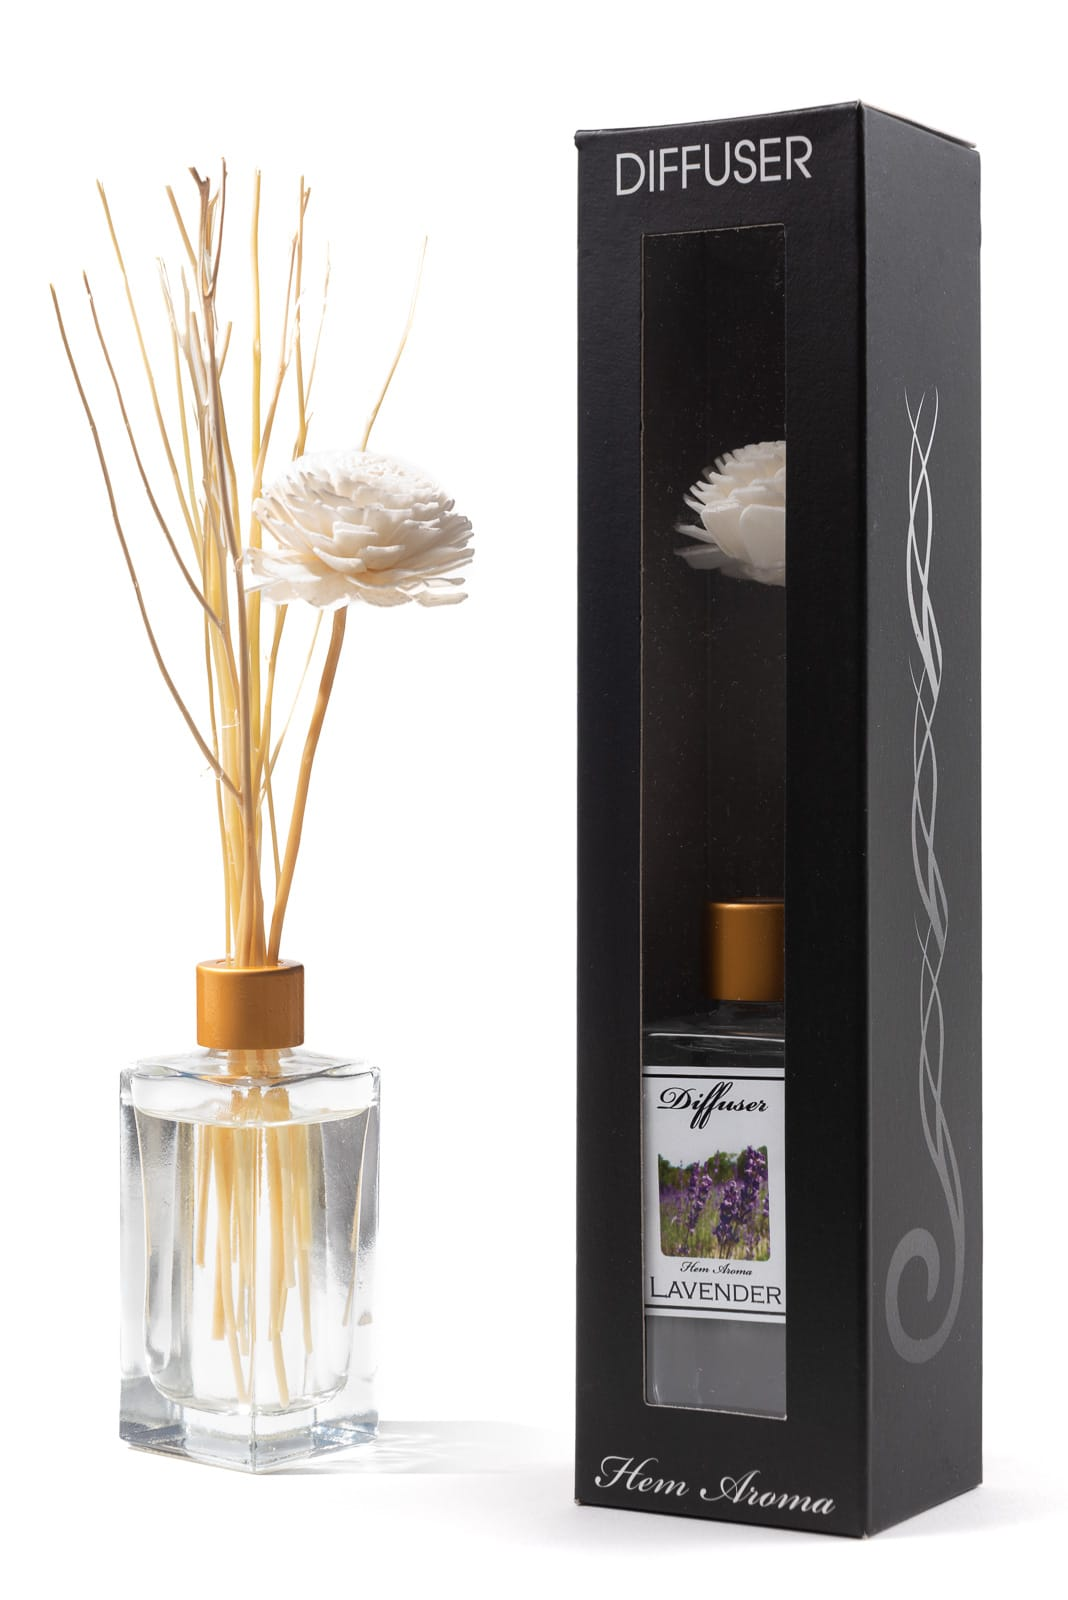 Scent diffuser with packaging